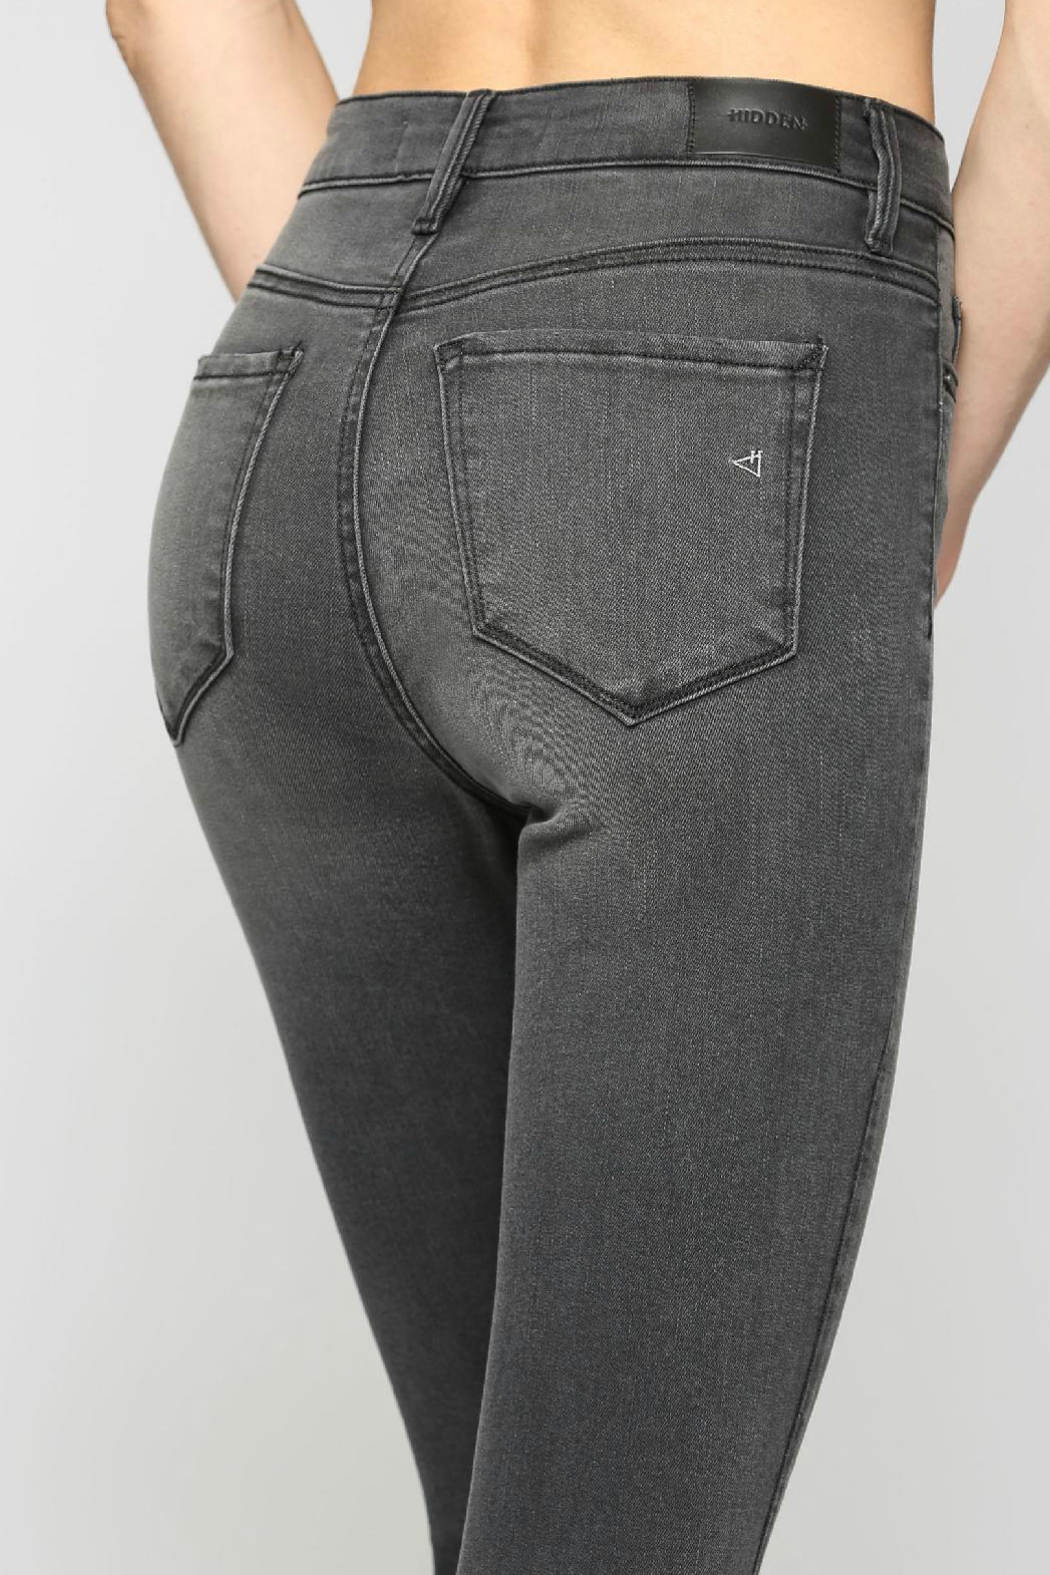 Hidden Jeans TAYLOR GREY HIGH RISE FRAYED SKINNY - Side Cropped Image